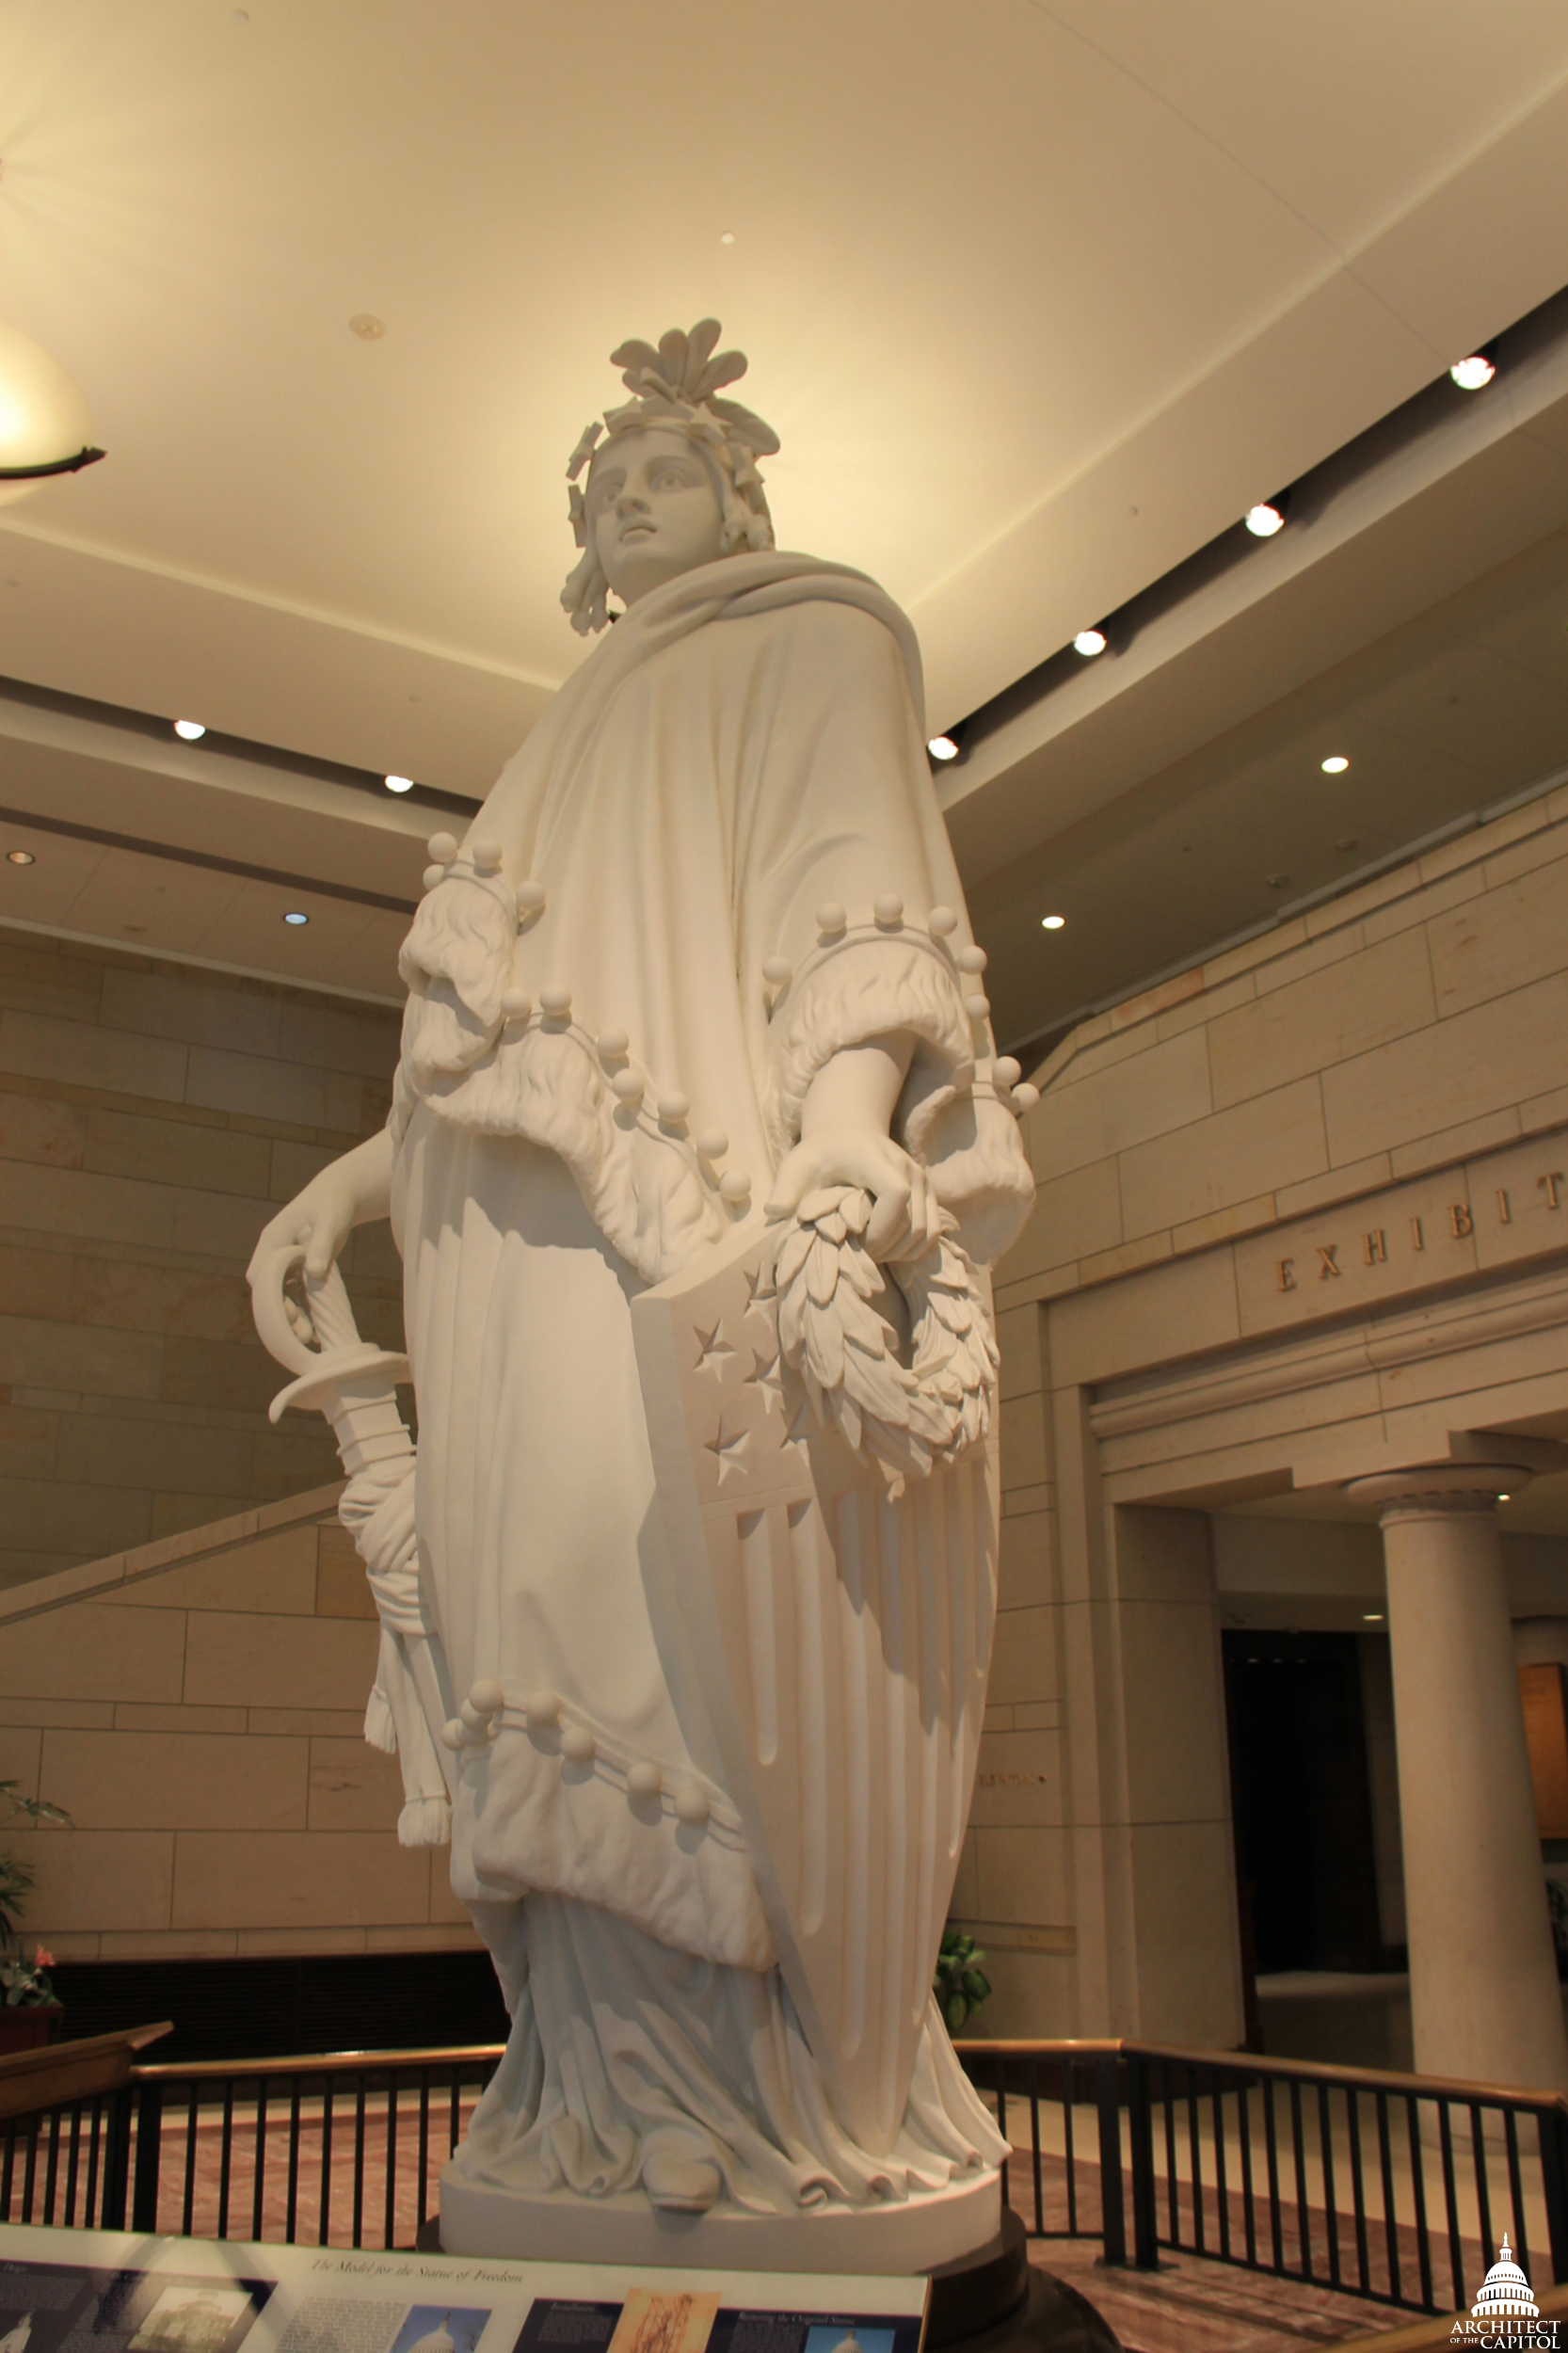 Plaster model of the Statue of Freedom in the Capitol Visitor Center.